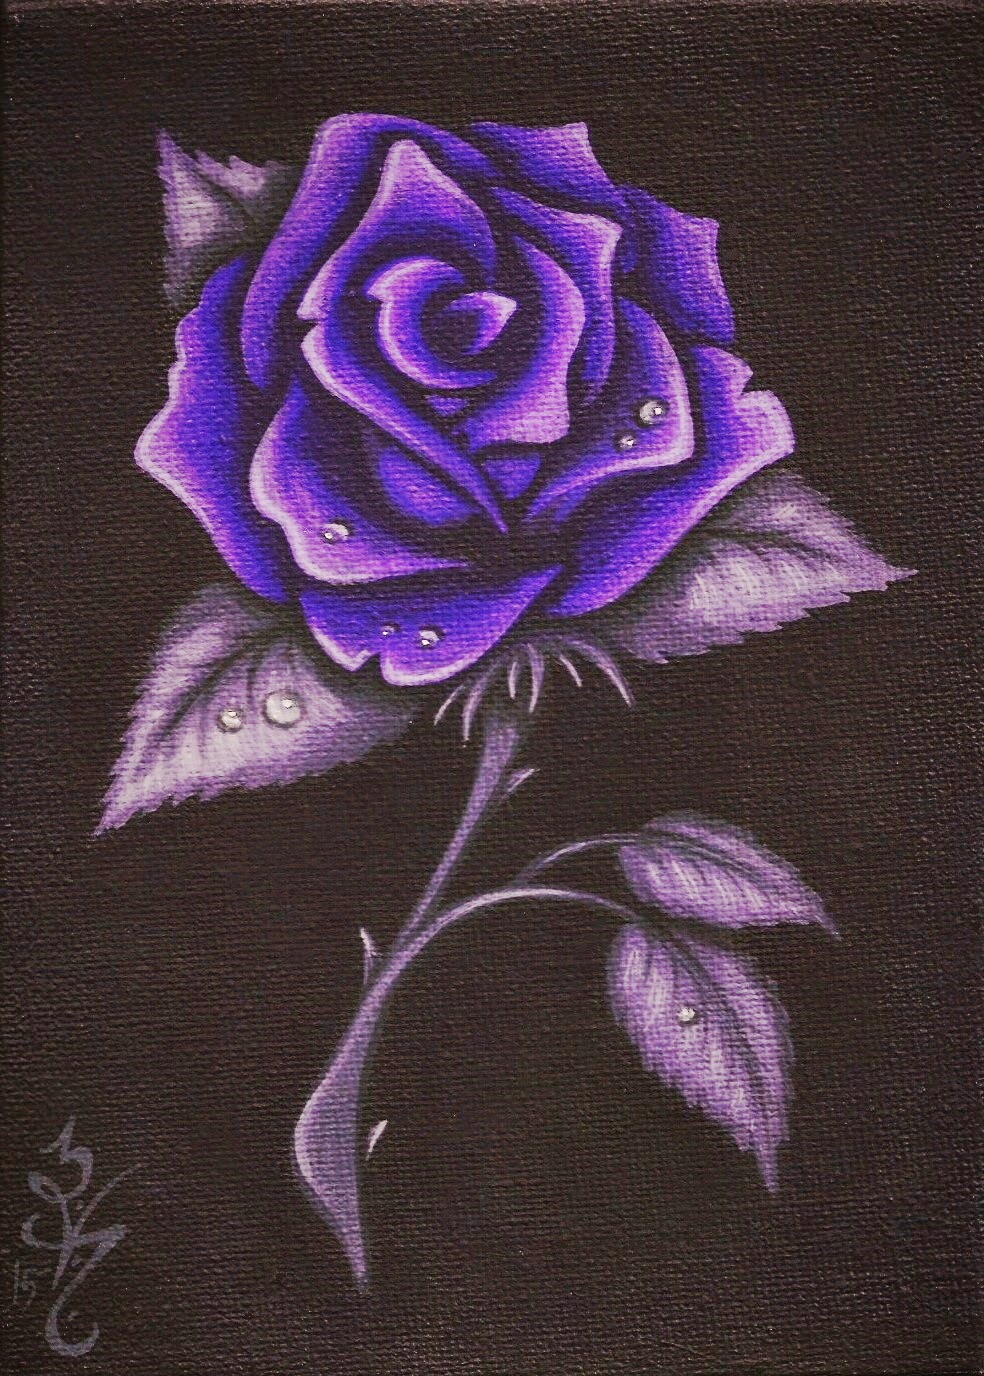 https://www.etsy.com/listing/220391794/original-gothic-fantasy-purple-rose?ref=shop_home_active_1